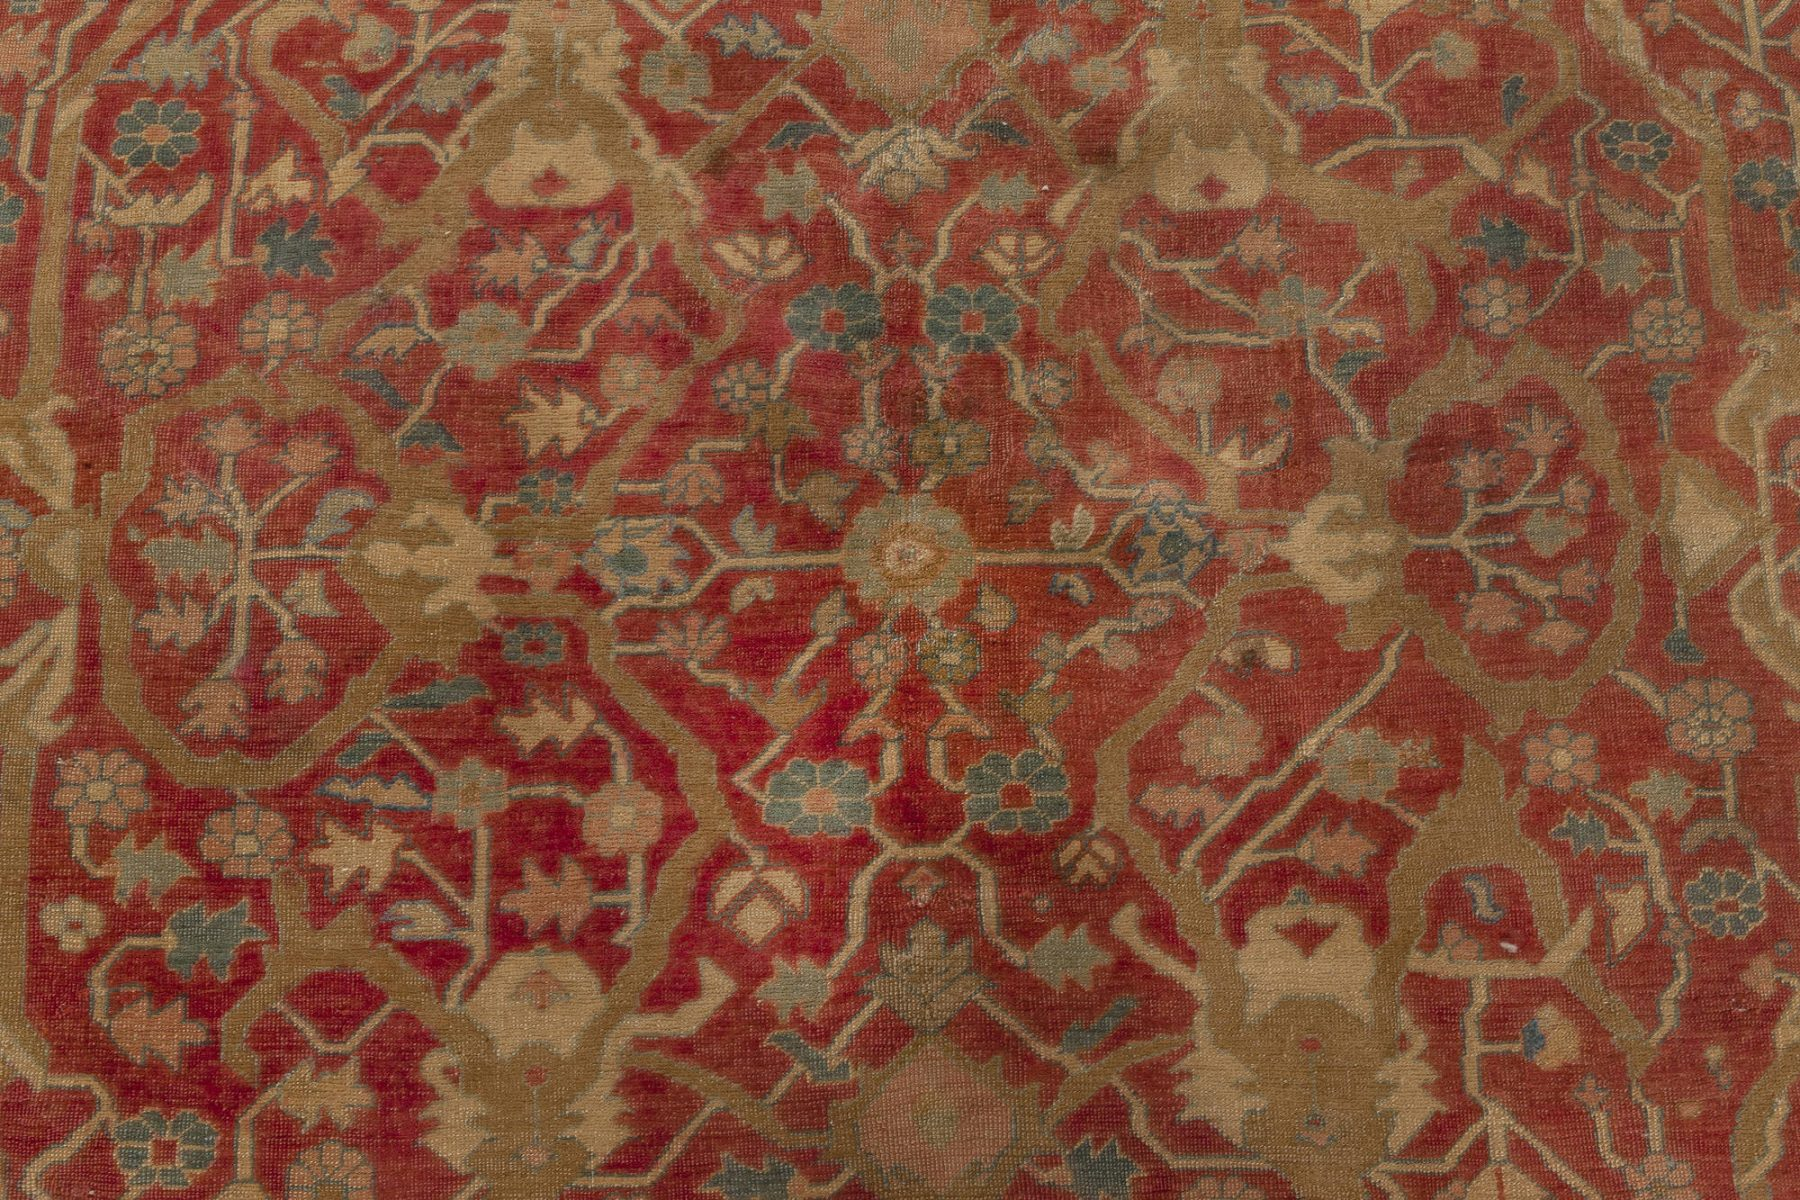 Antique Persian Serapi Deep Red, Brown, Blue and Beige Wool Rug BB7011